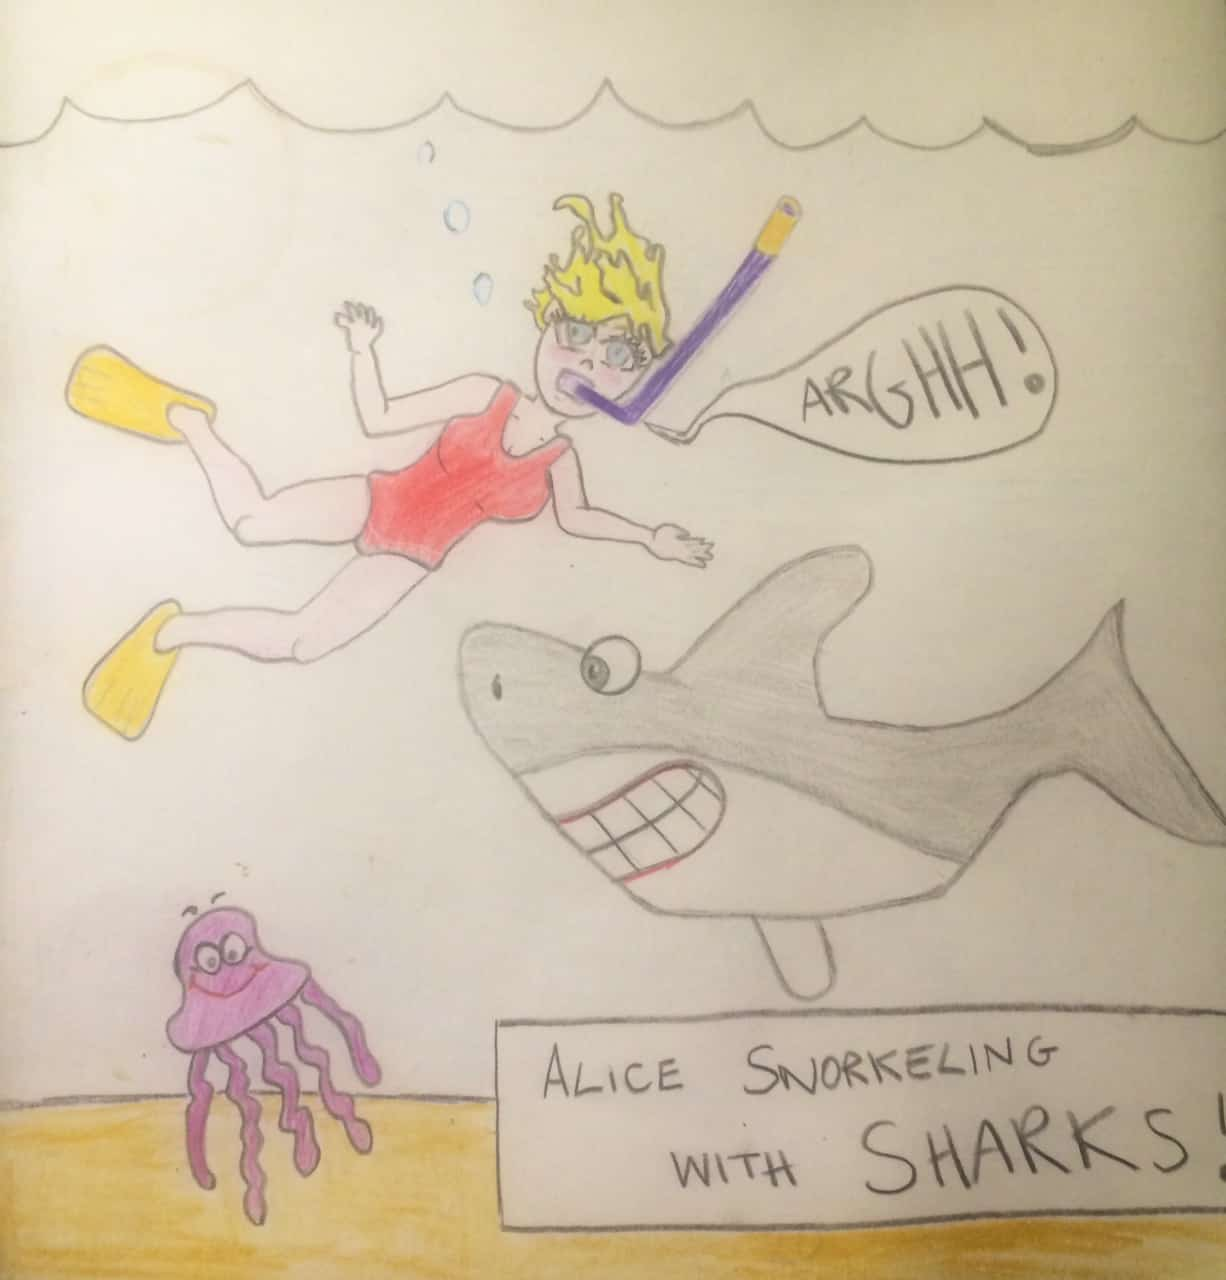 Alice swimming with sharks